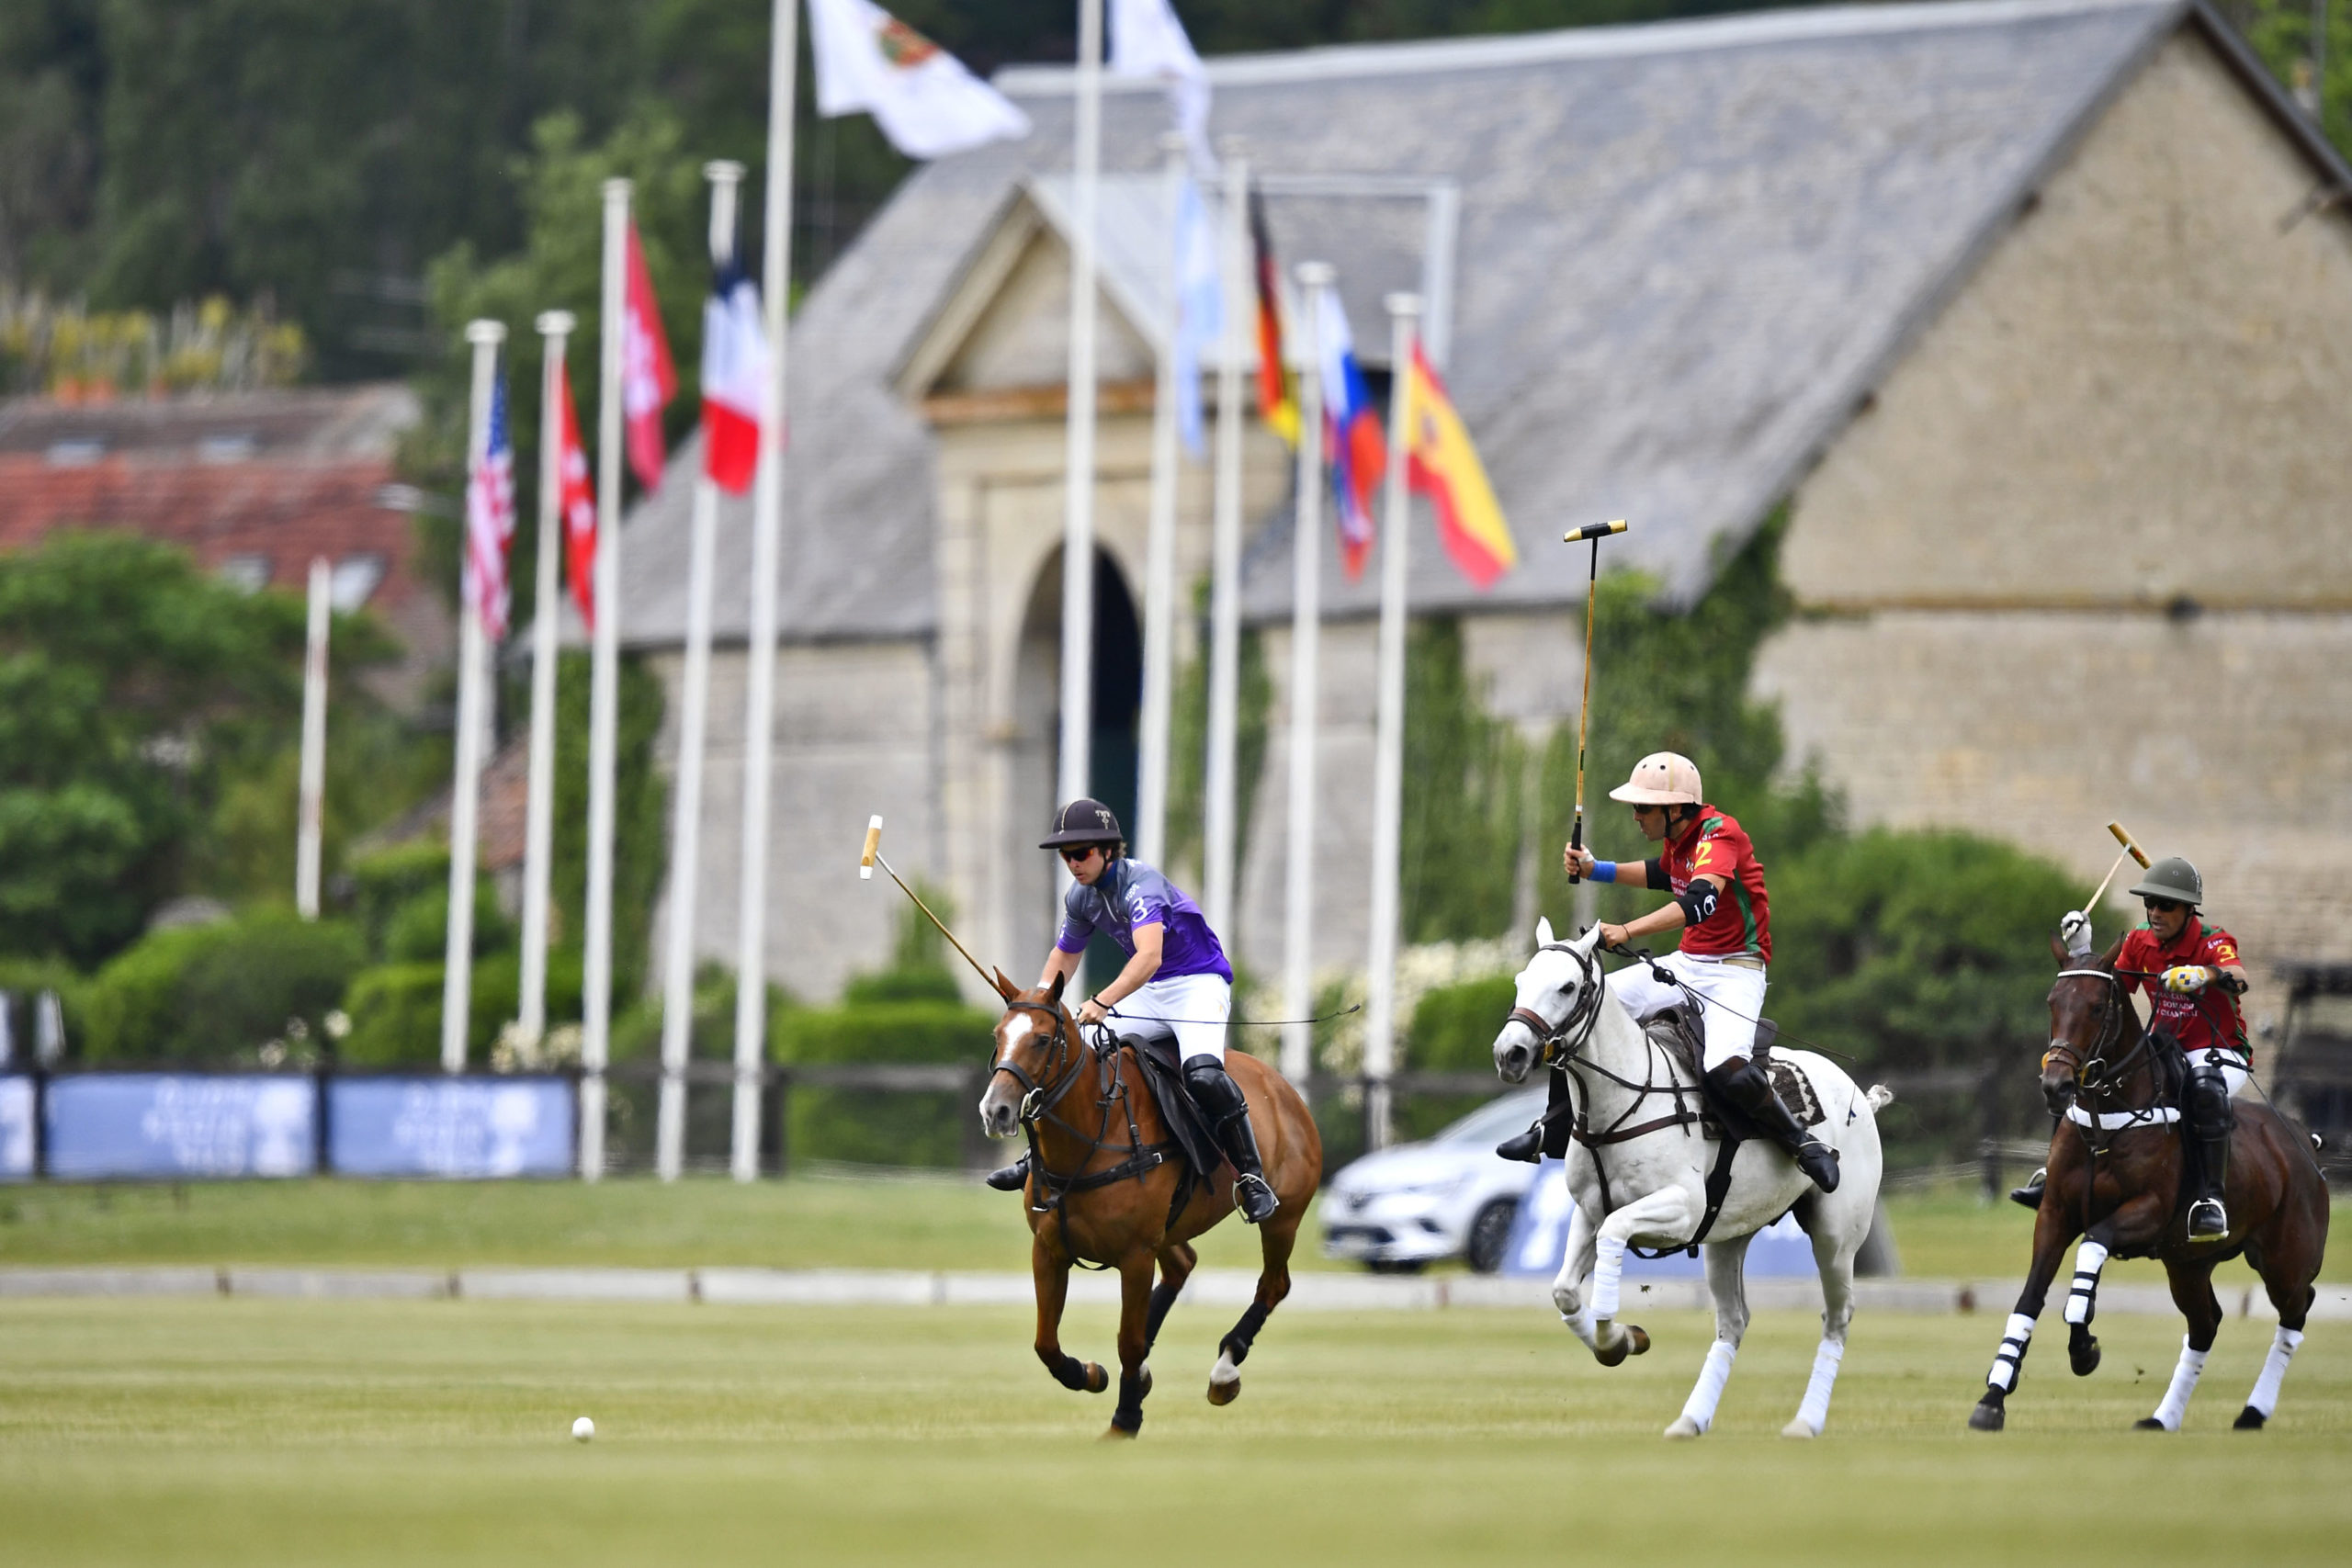 Polo Rider Cup Day 3